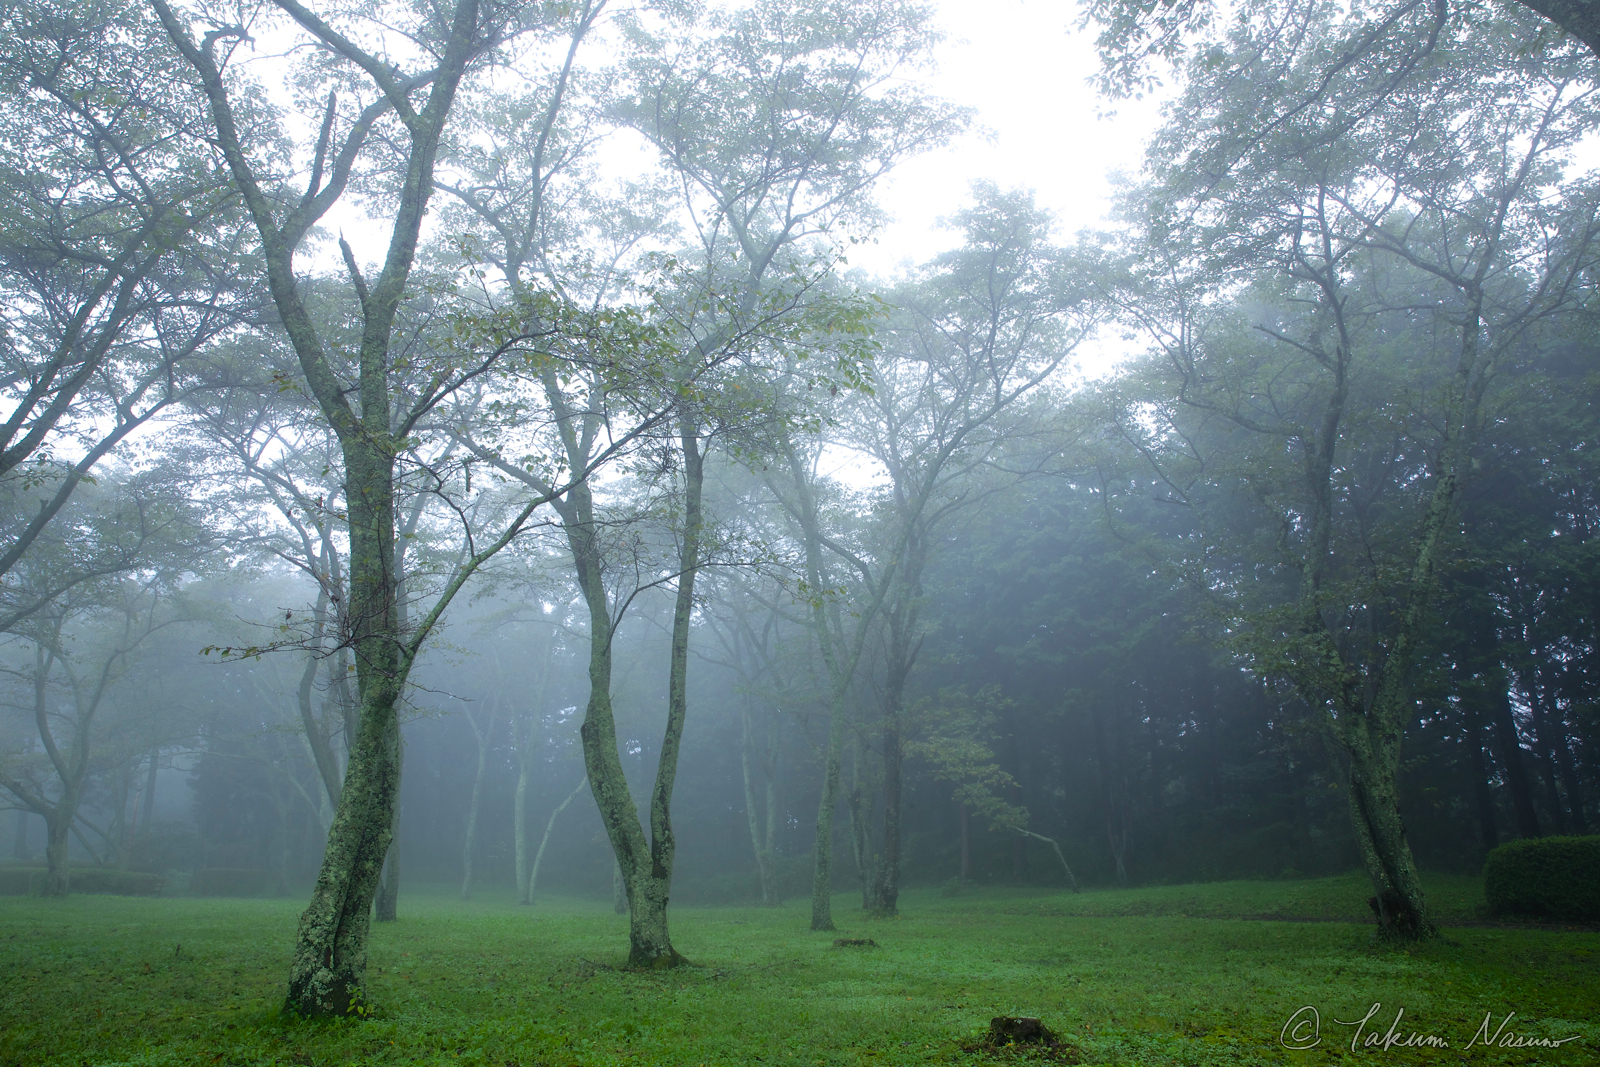 Tanagura Photo Contenst - Morning mist and Silence